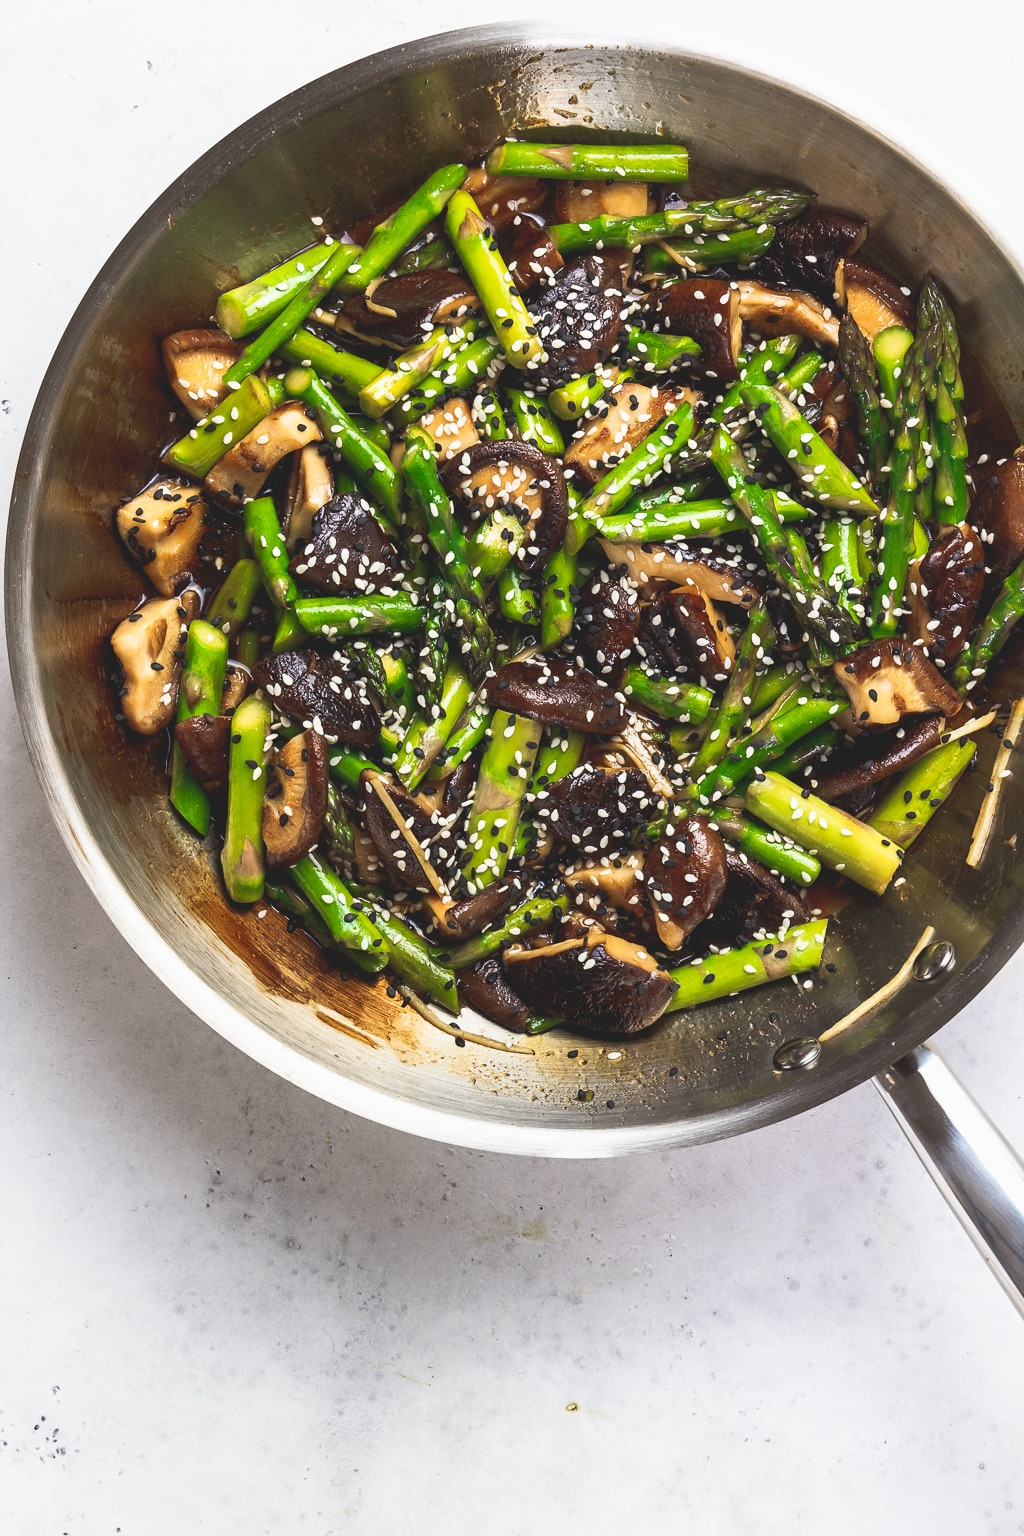 skillet with asparagus and mushroom stir fry